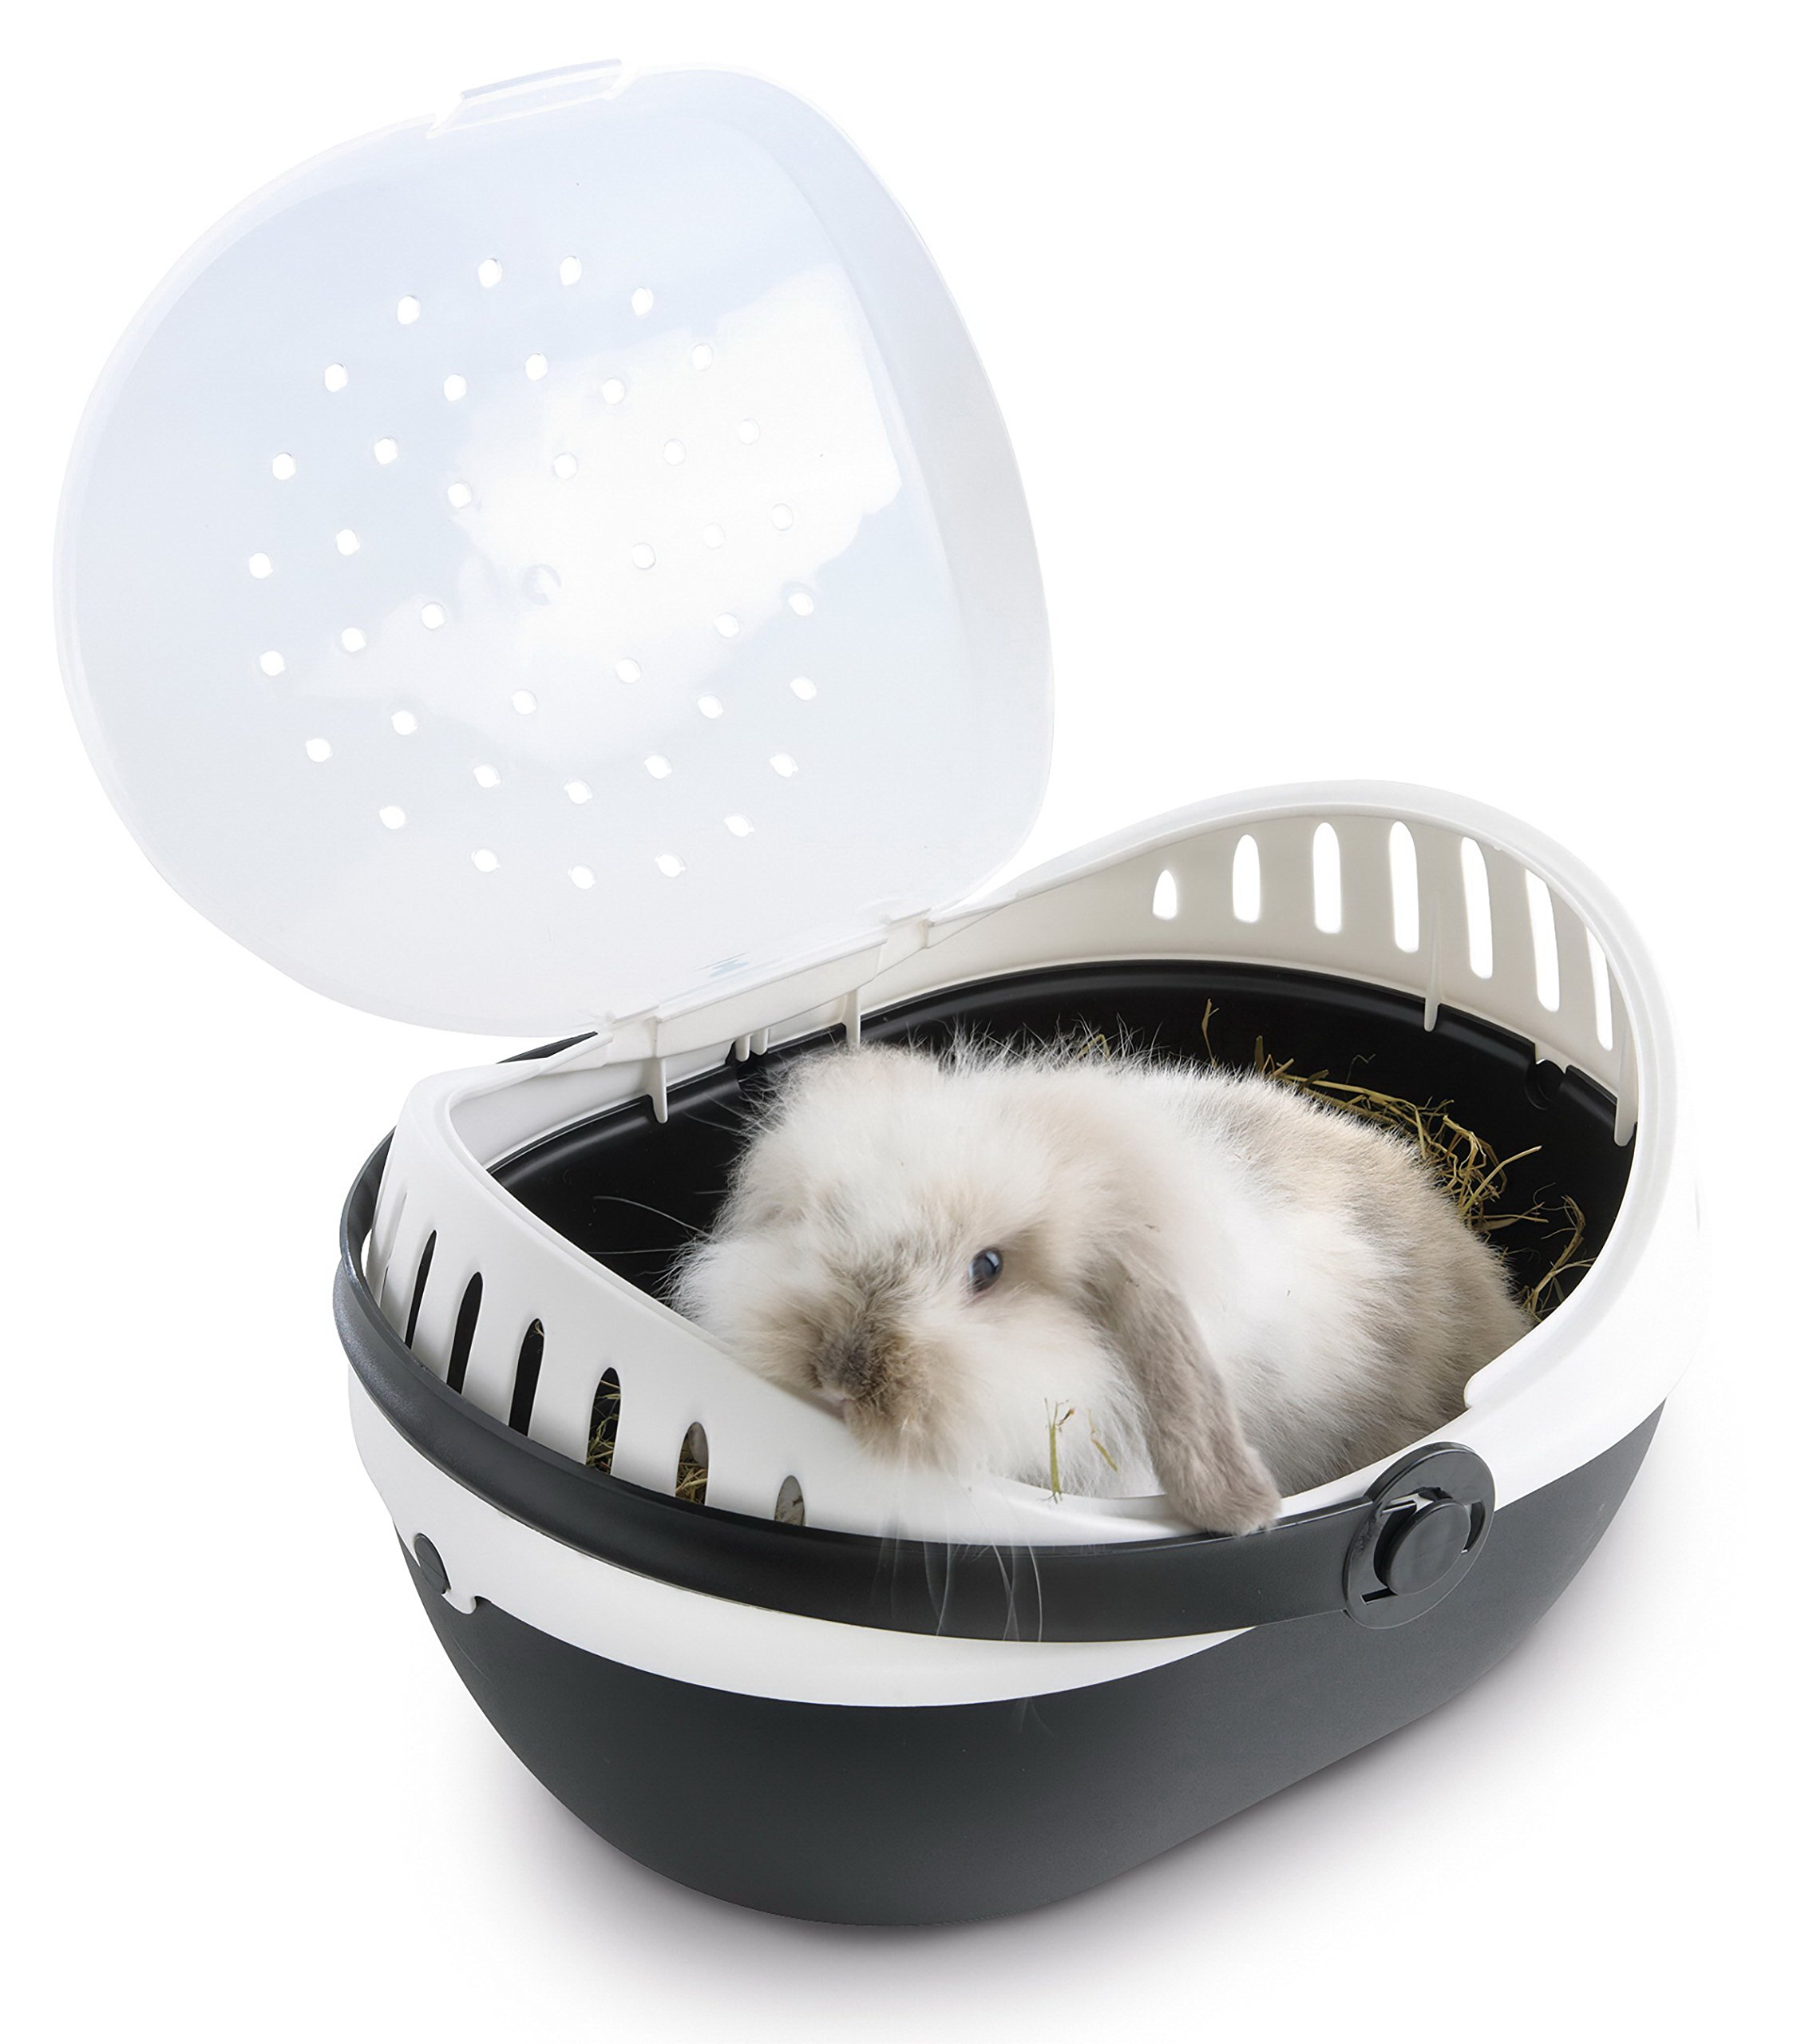 Nobby Transportbox for Rodents Elmo, Large by Nobby